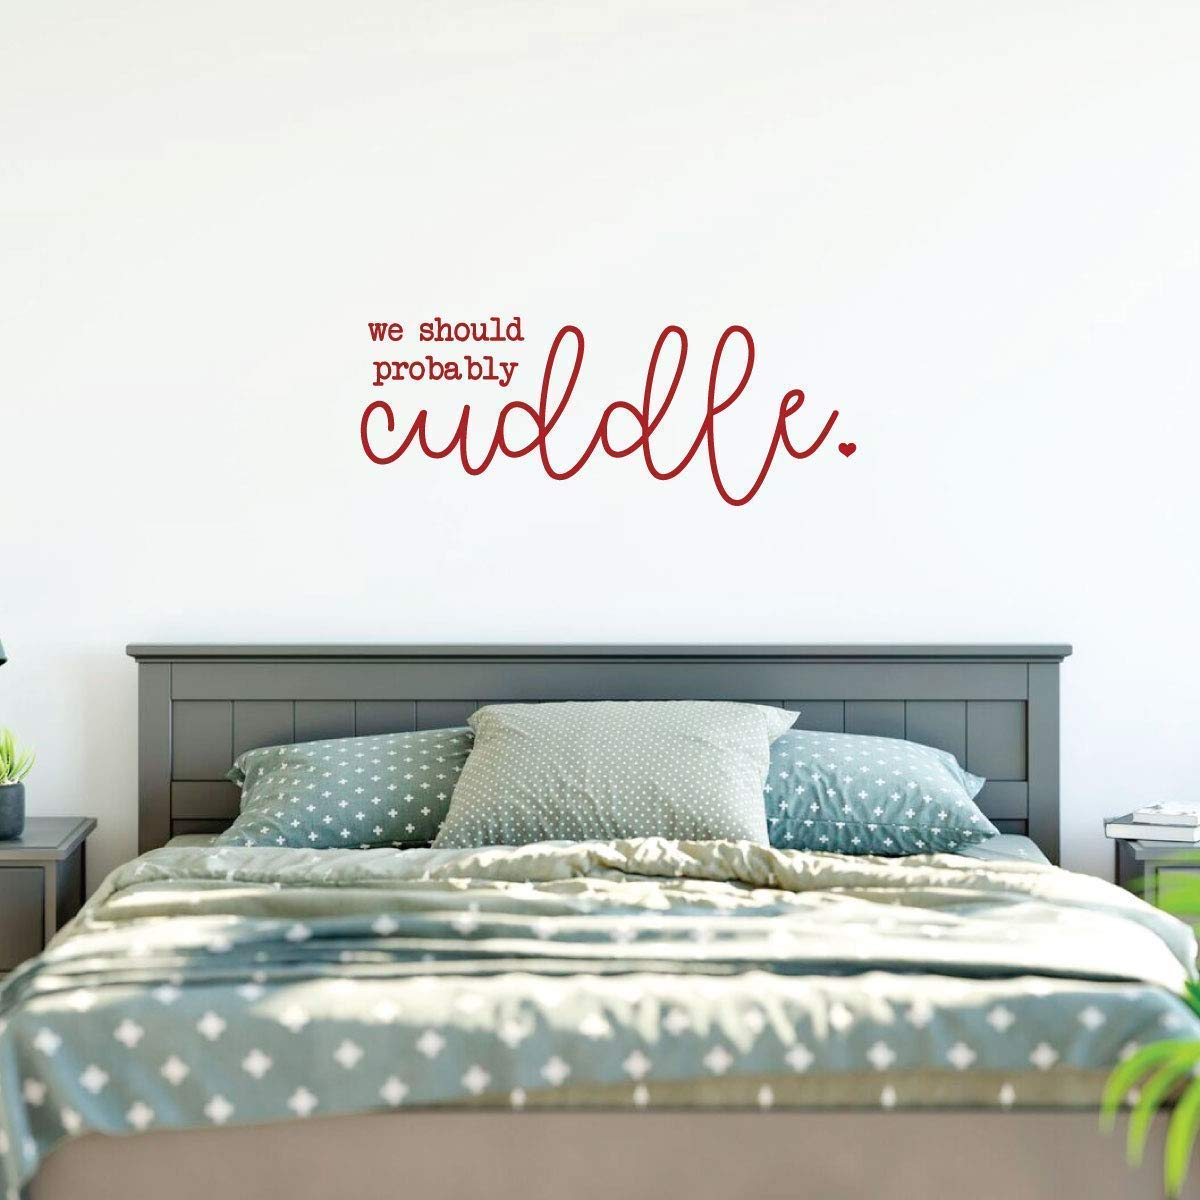 Handmade Romantic Bed Room Sign Painted I Choose you Sign Newlyweds Home Decor Couple Custom